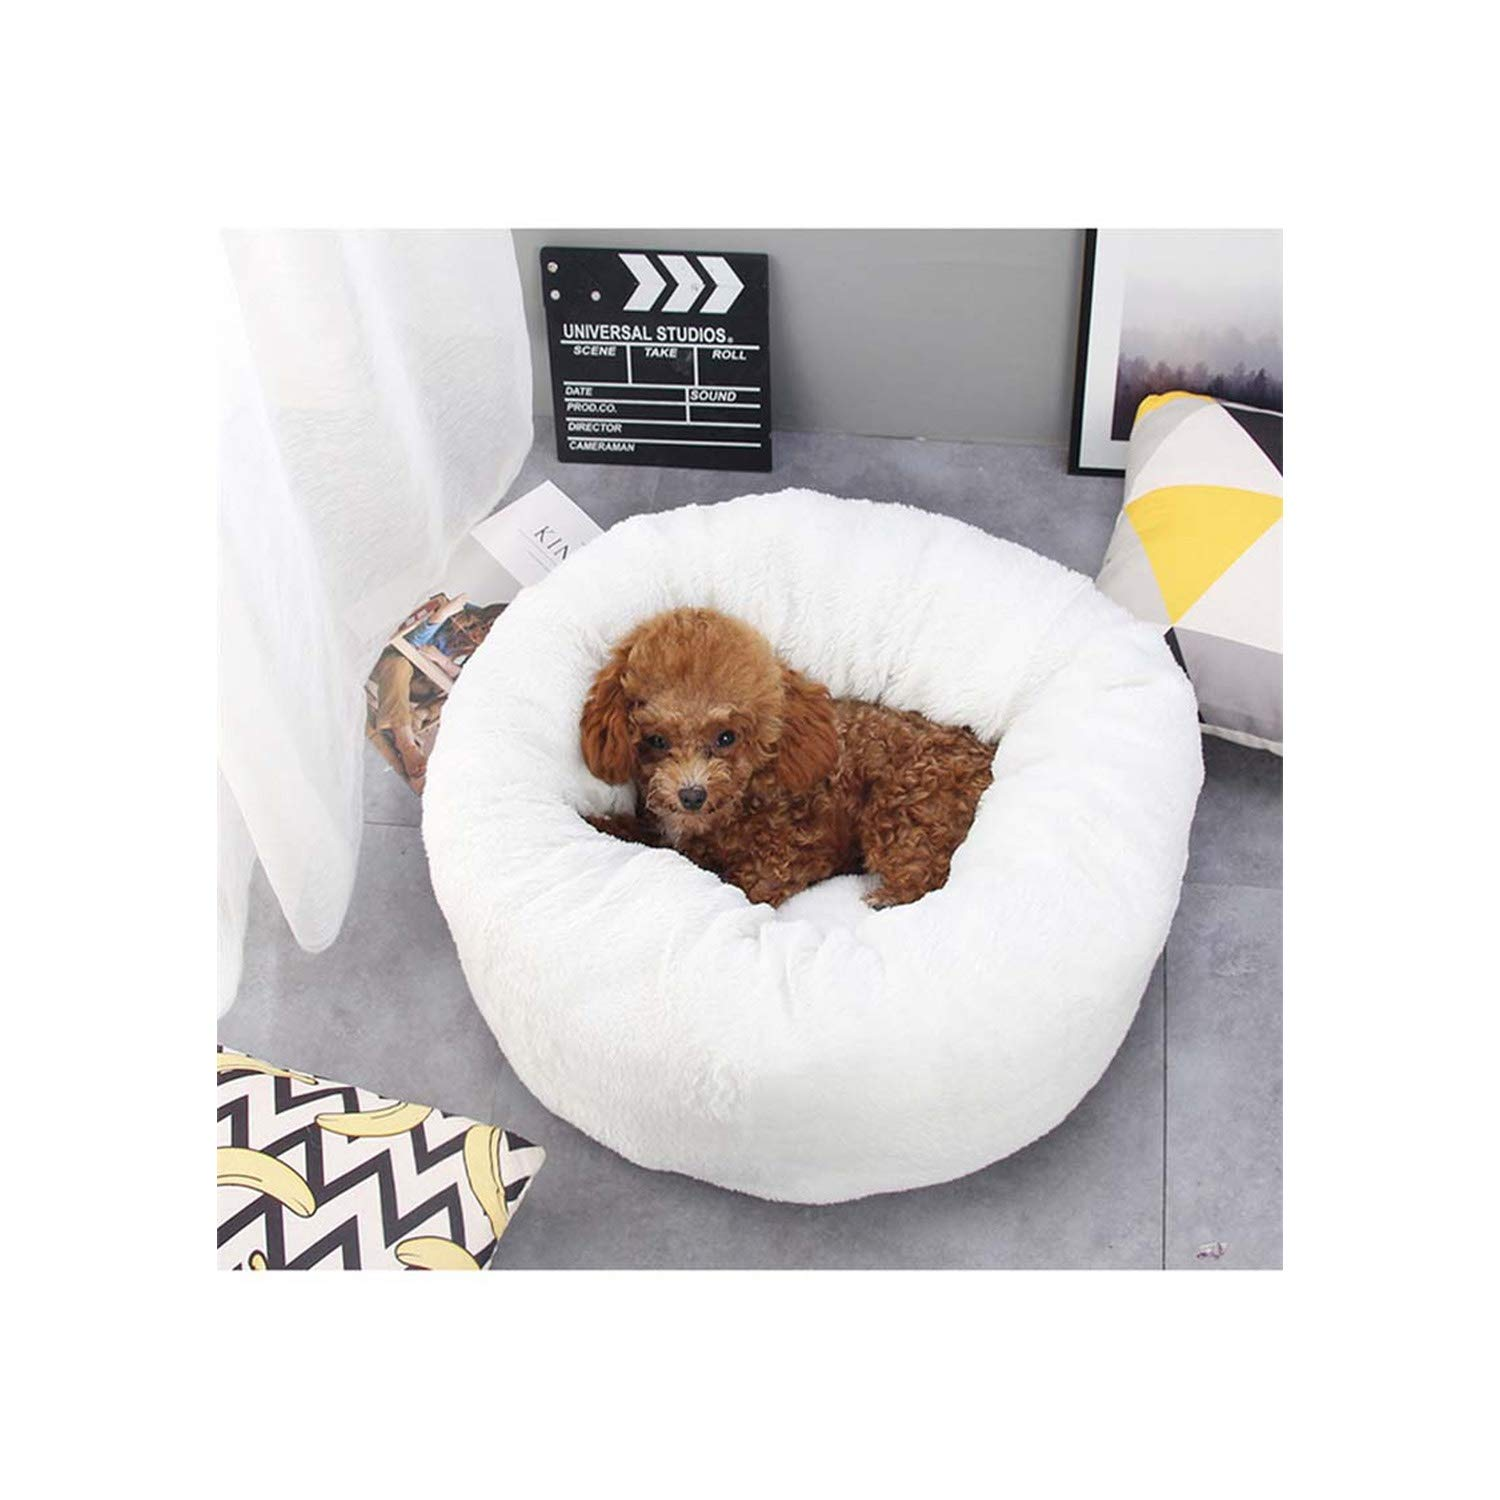 Dog Mat Doghouse Puppy Bed Basket Prush Soft Sleeping Cushion Breathable Cats Mats Deep Pet Cat House,White,50X23Cm(Dxh)